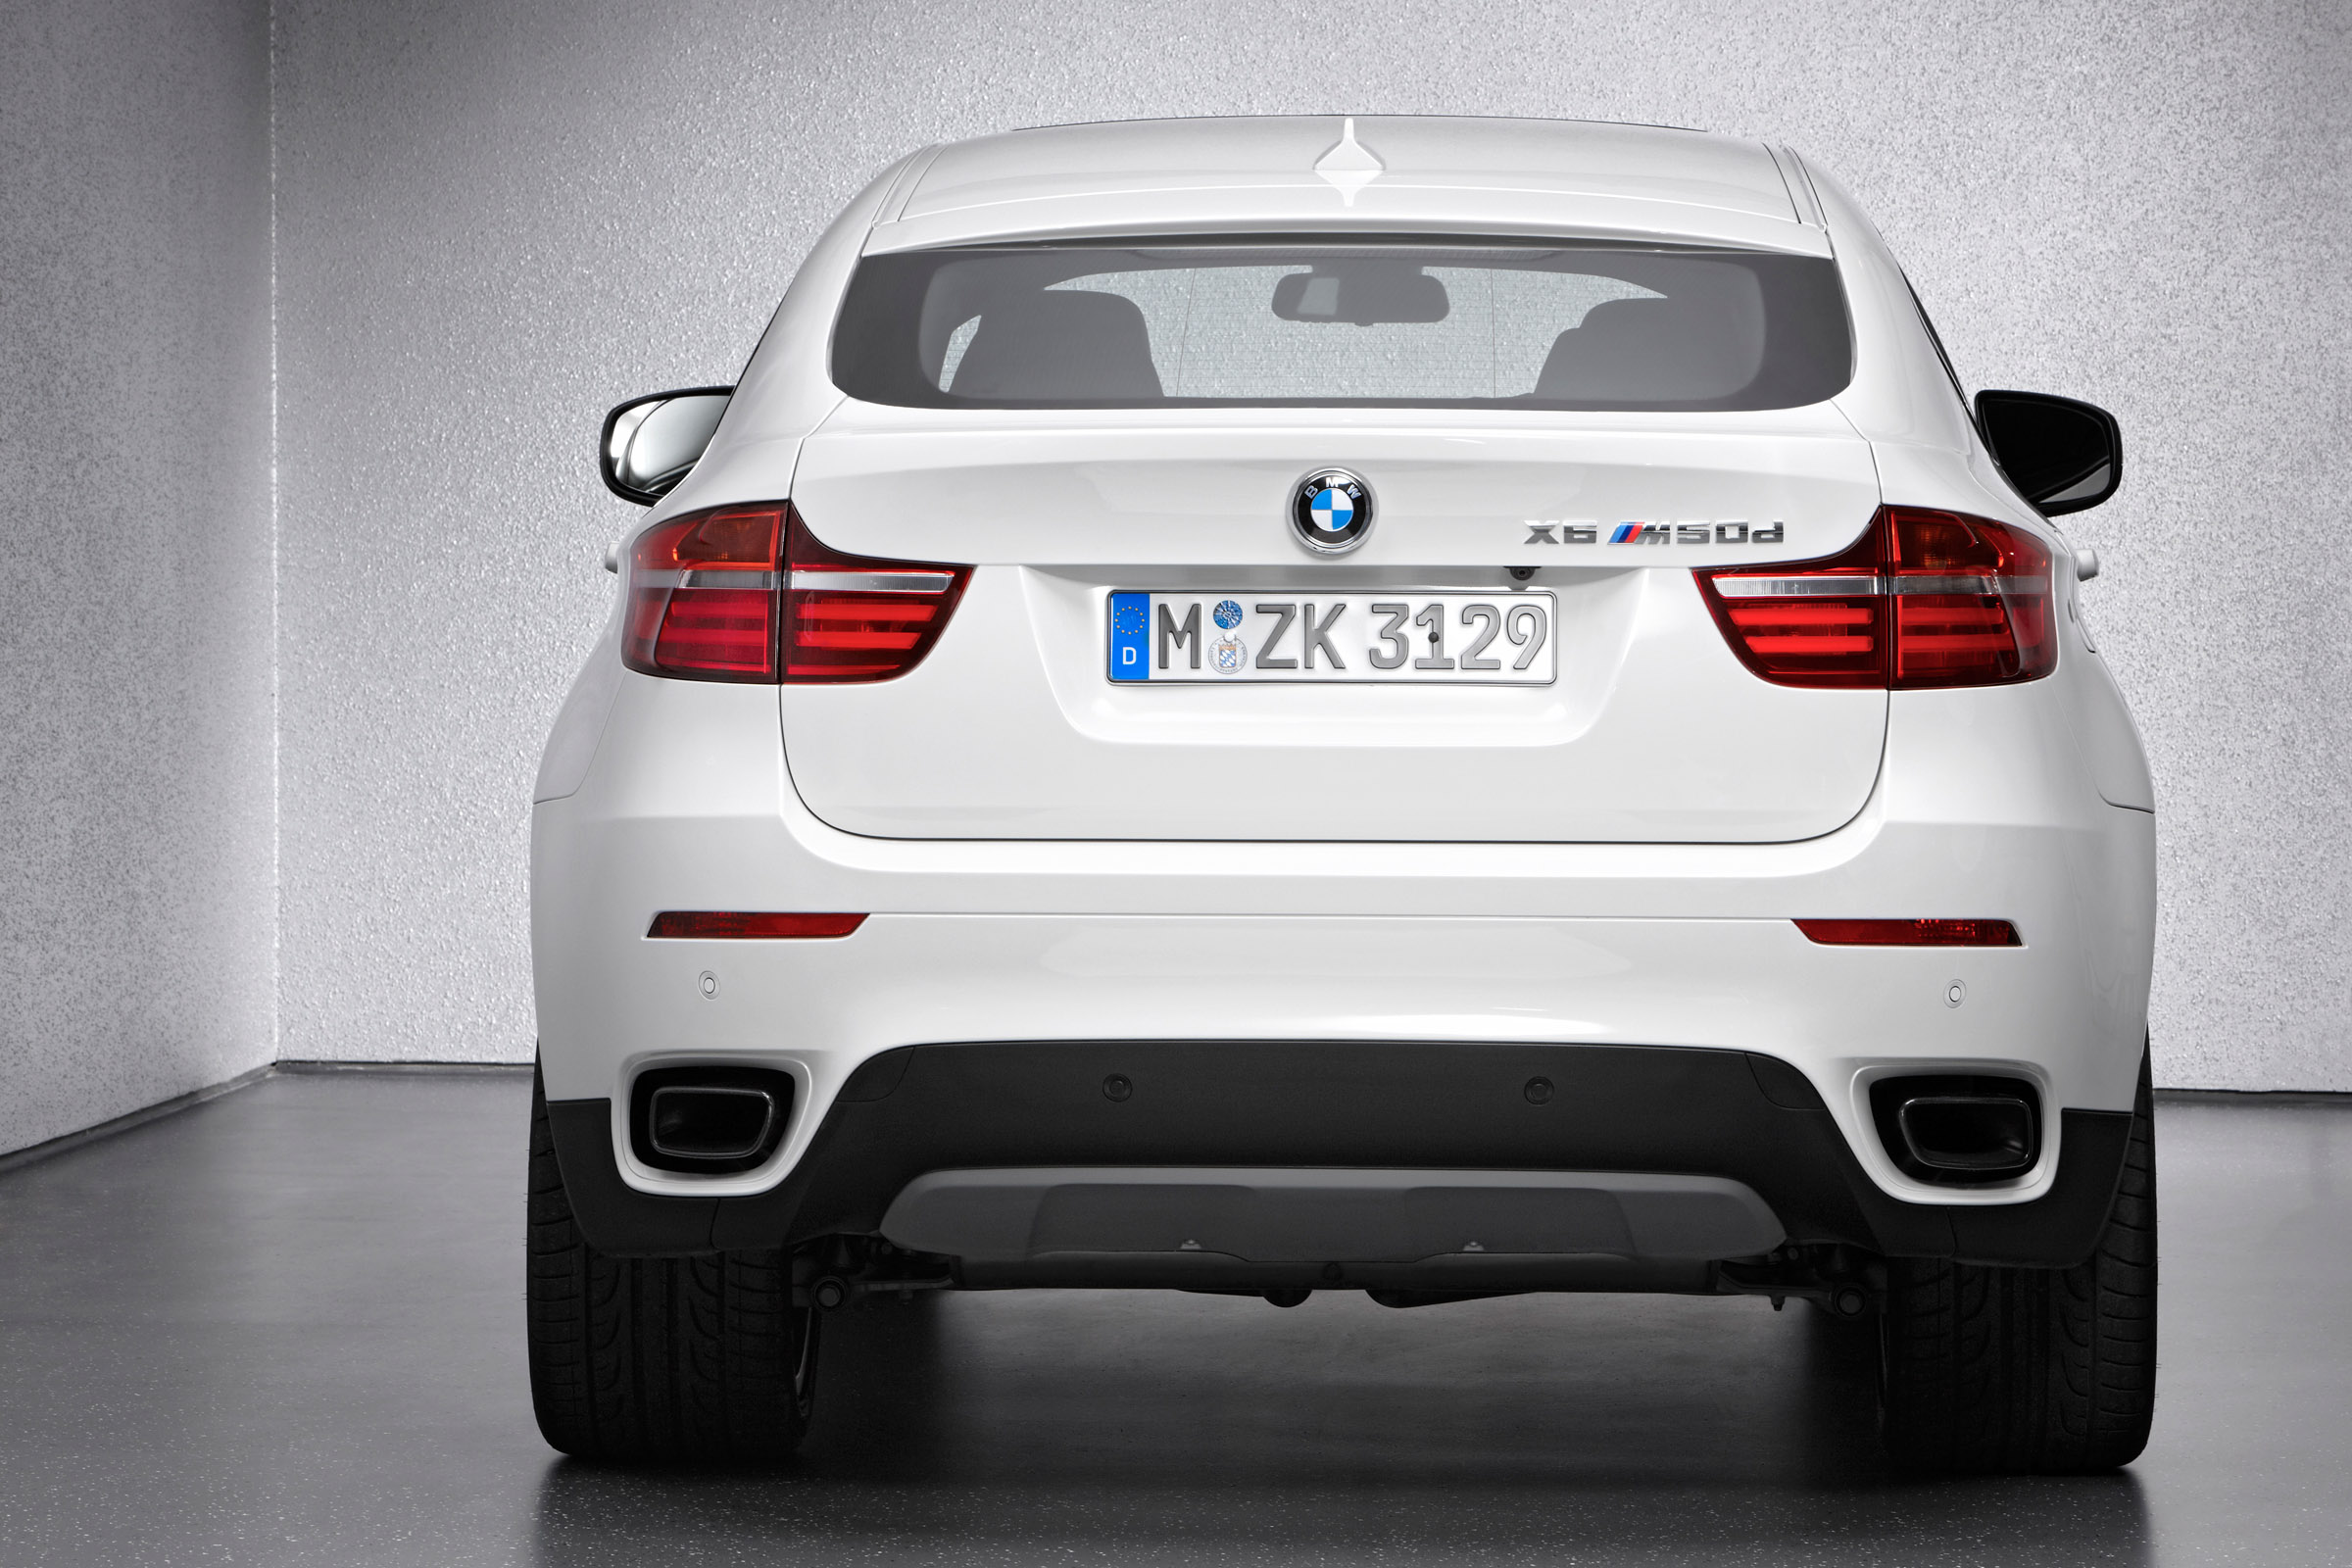 2012 Bmw X6 M50d Picture 63827